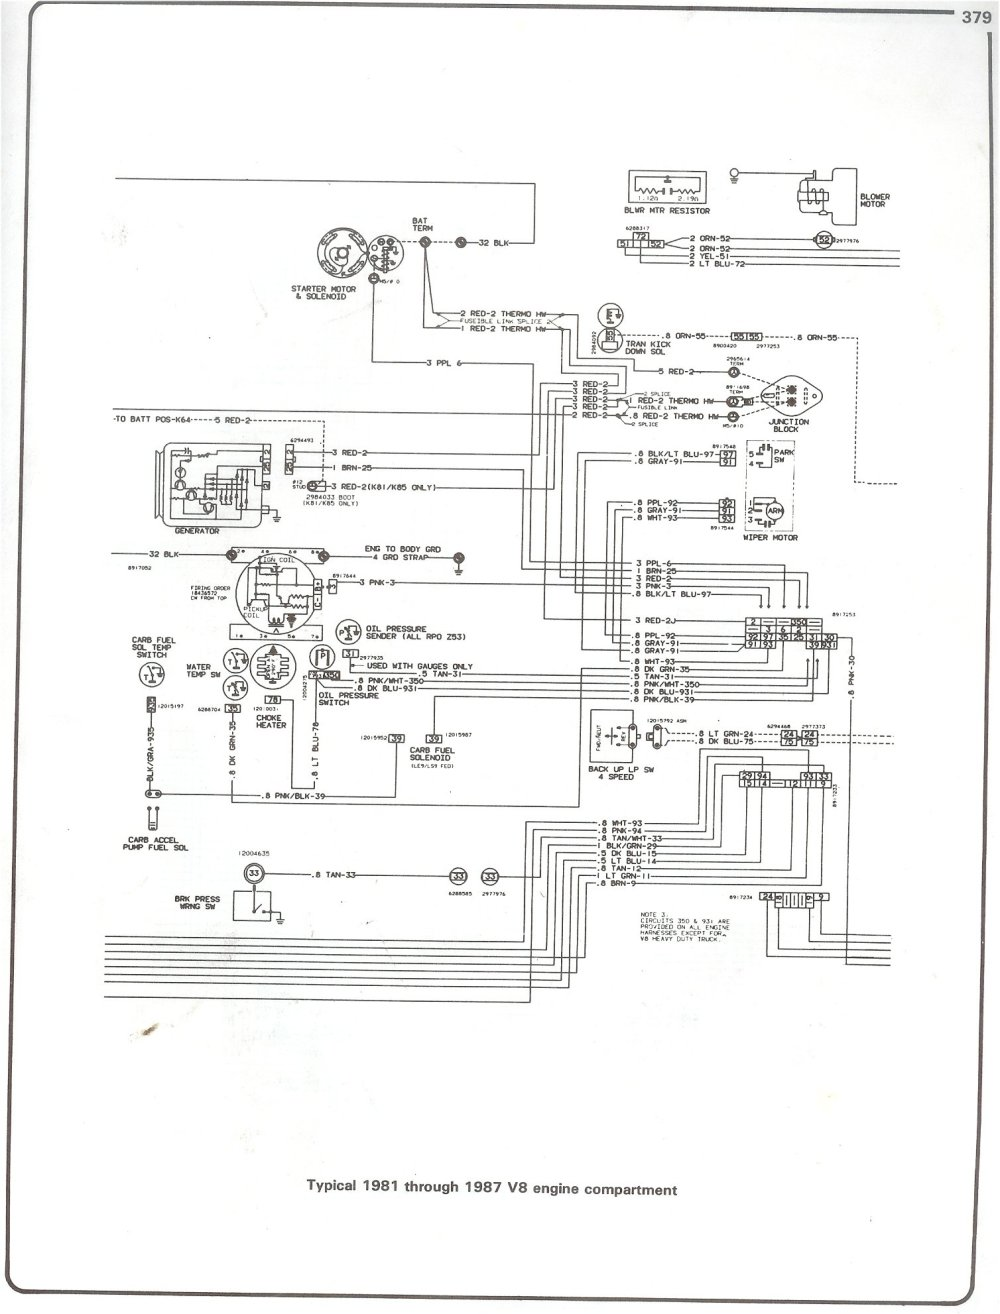 medium resolution of 87 c10 wiring diagram data schematic diagram 87 chevy truck engine wiring harness diagram wiring diagrams